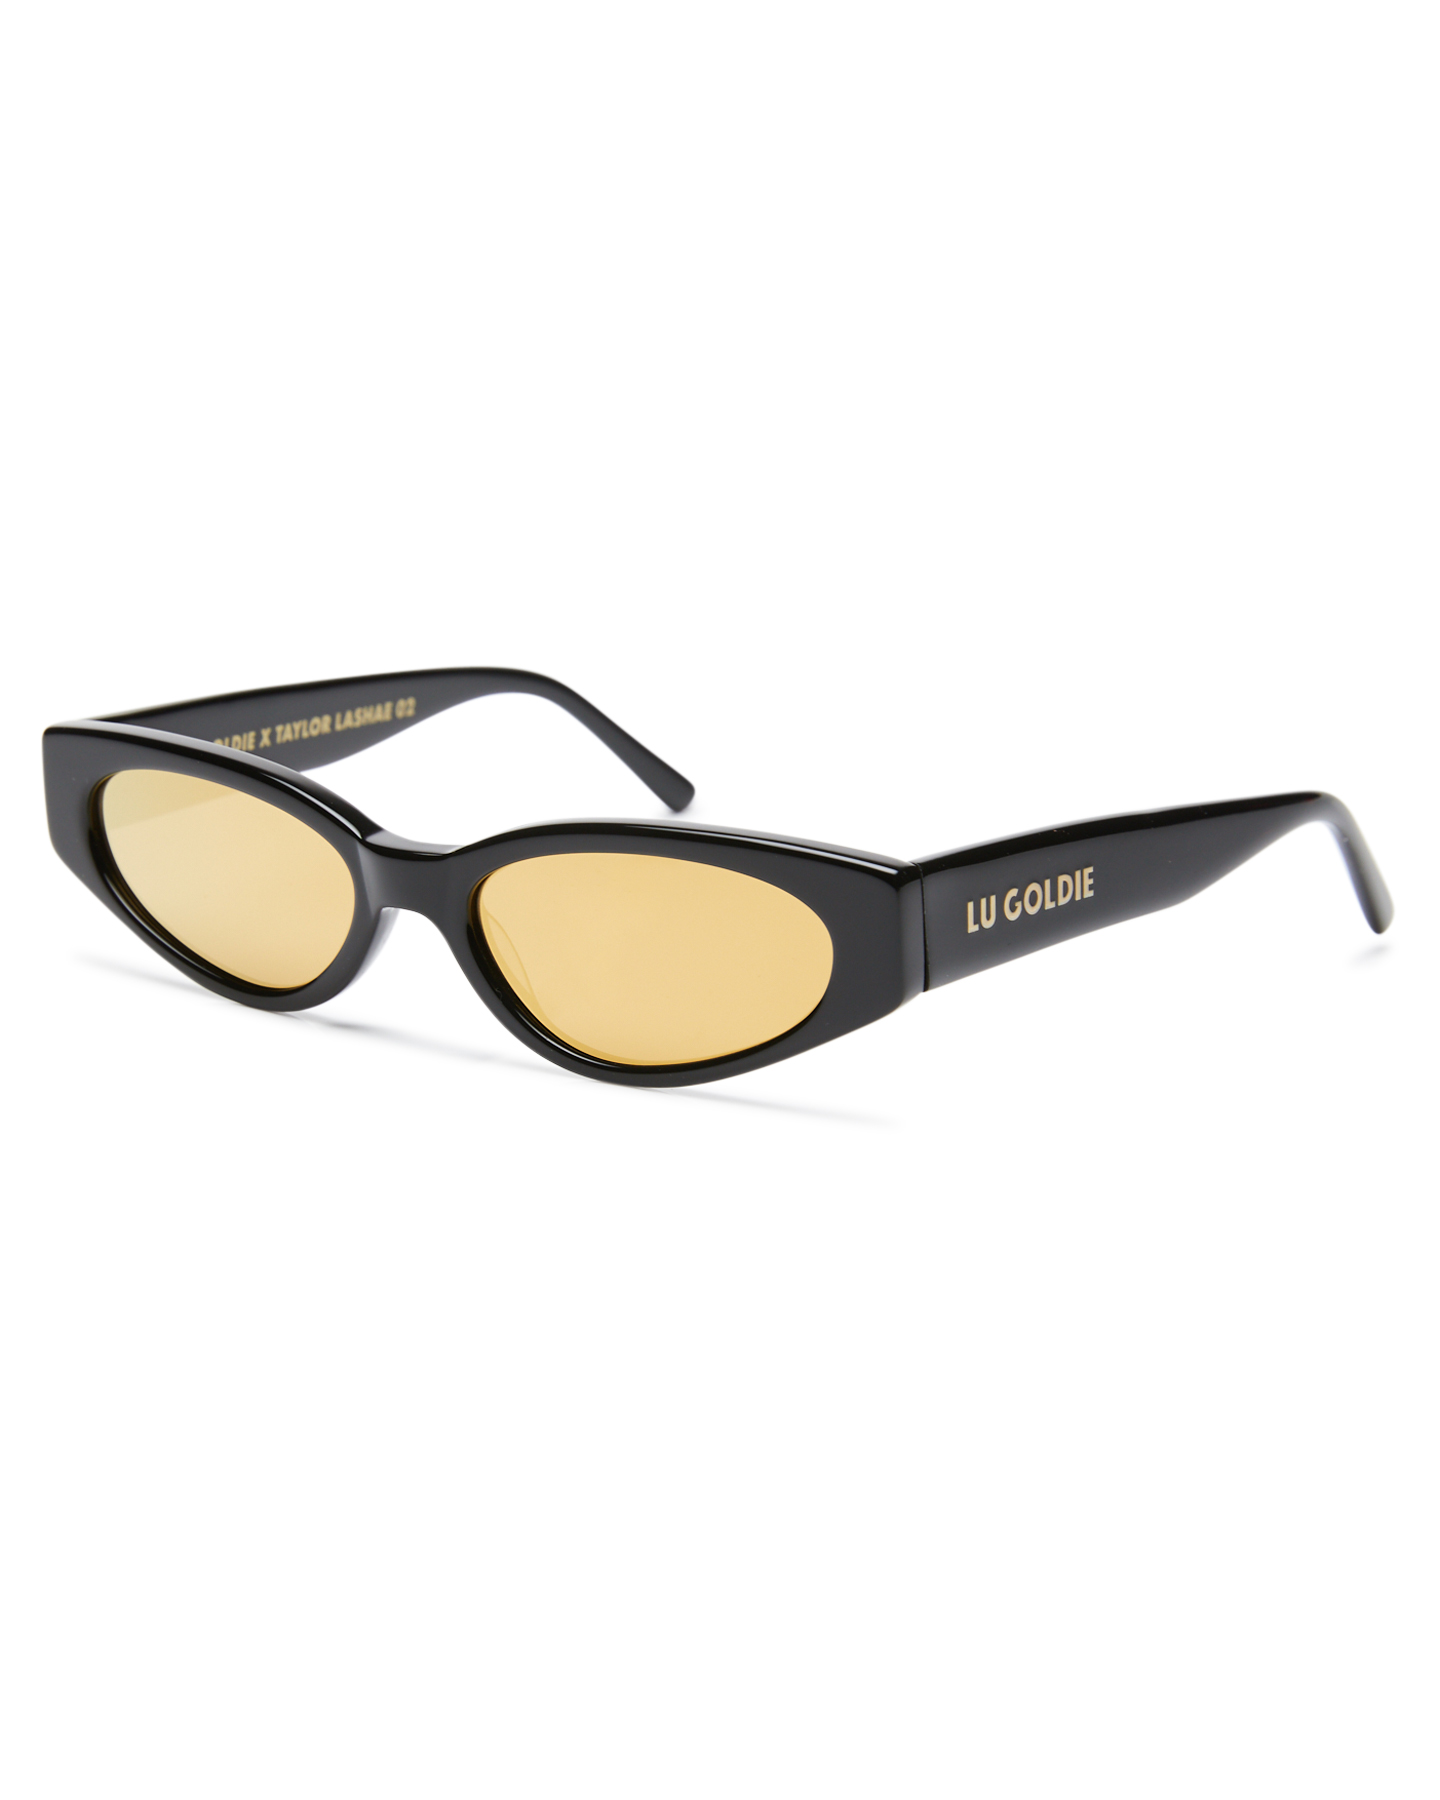 Lu Goldie Taylor Lashae 02 Sunglasses Gold